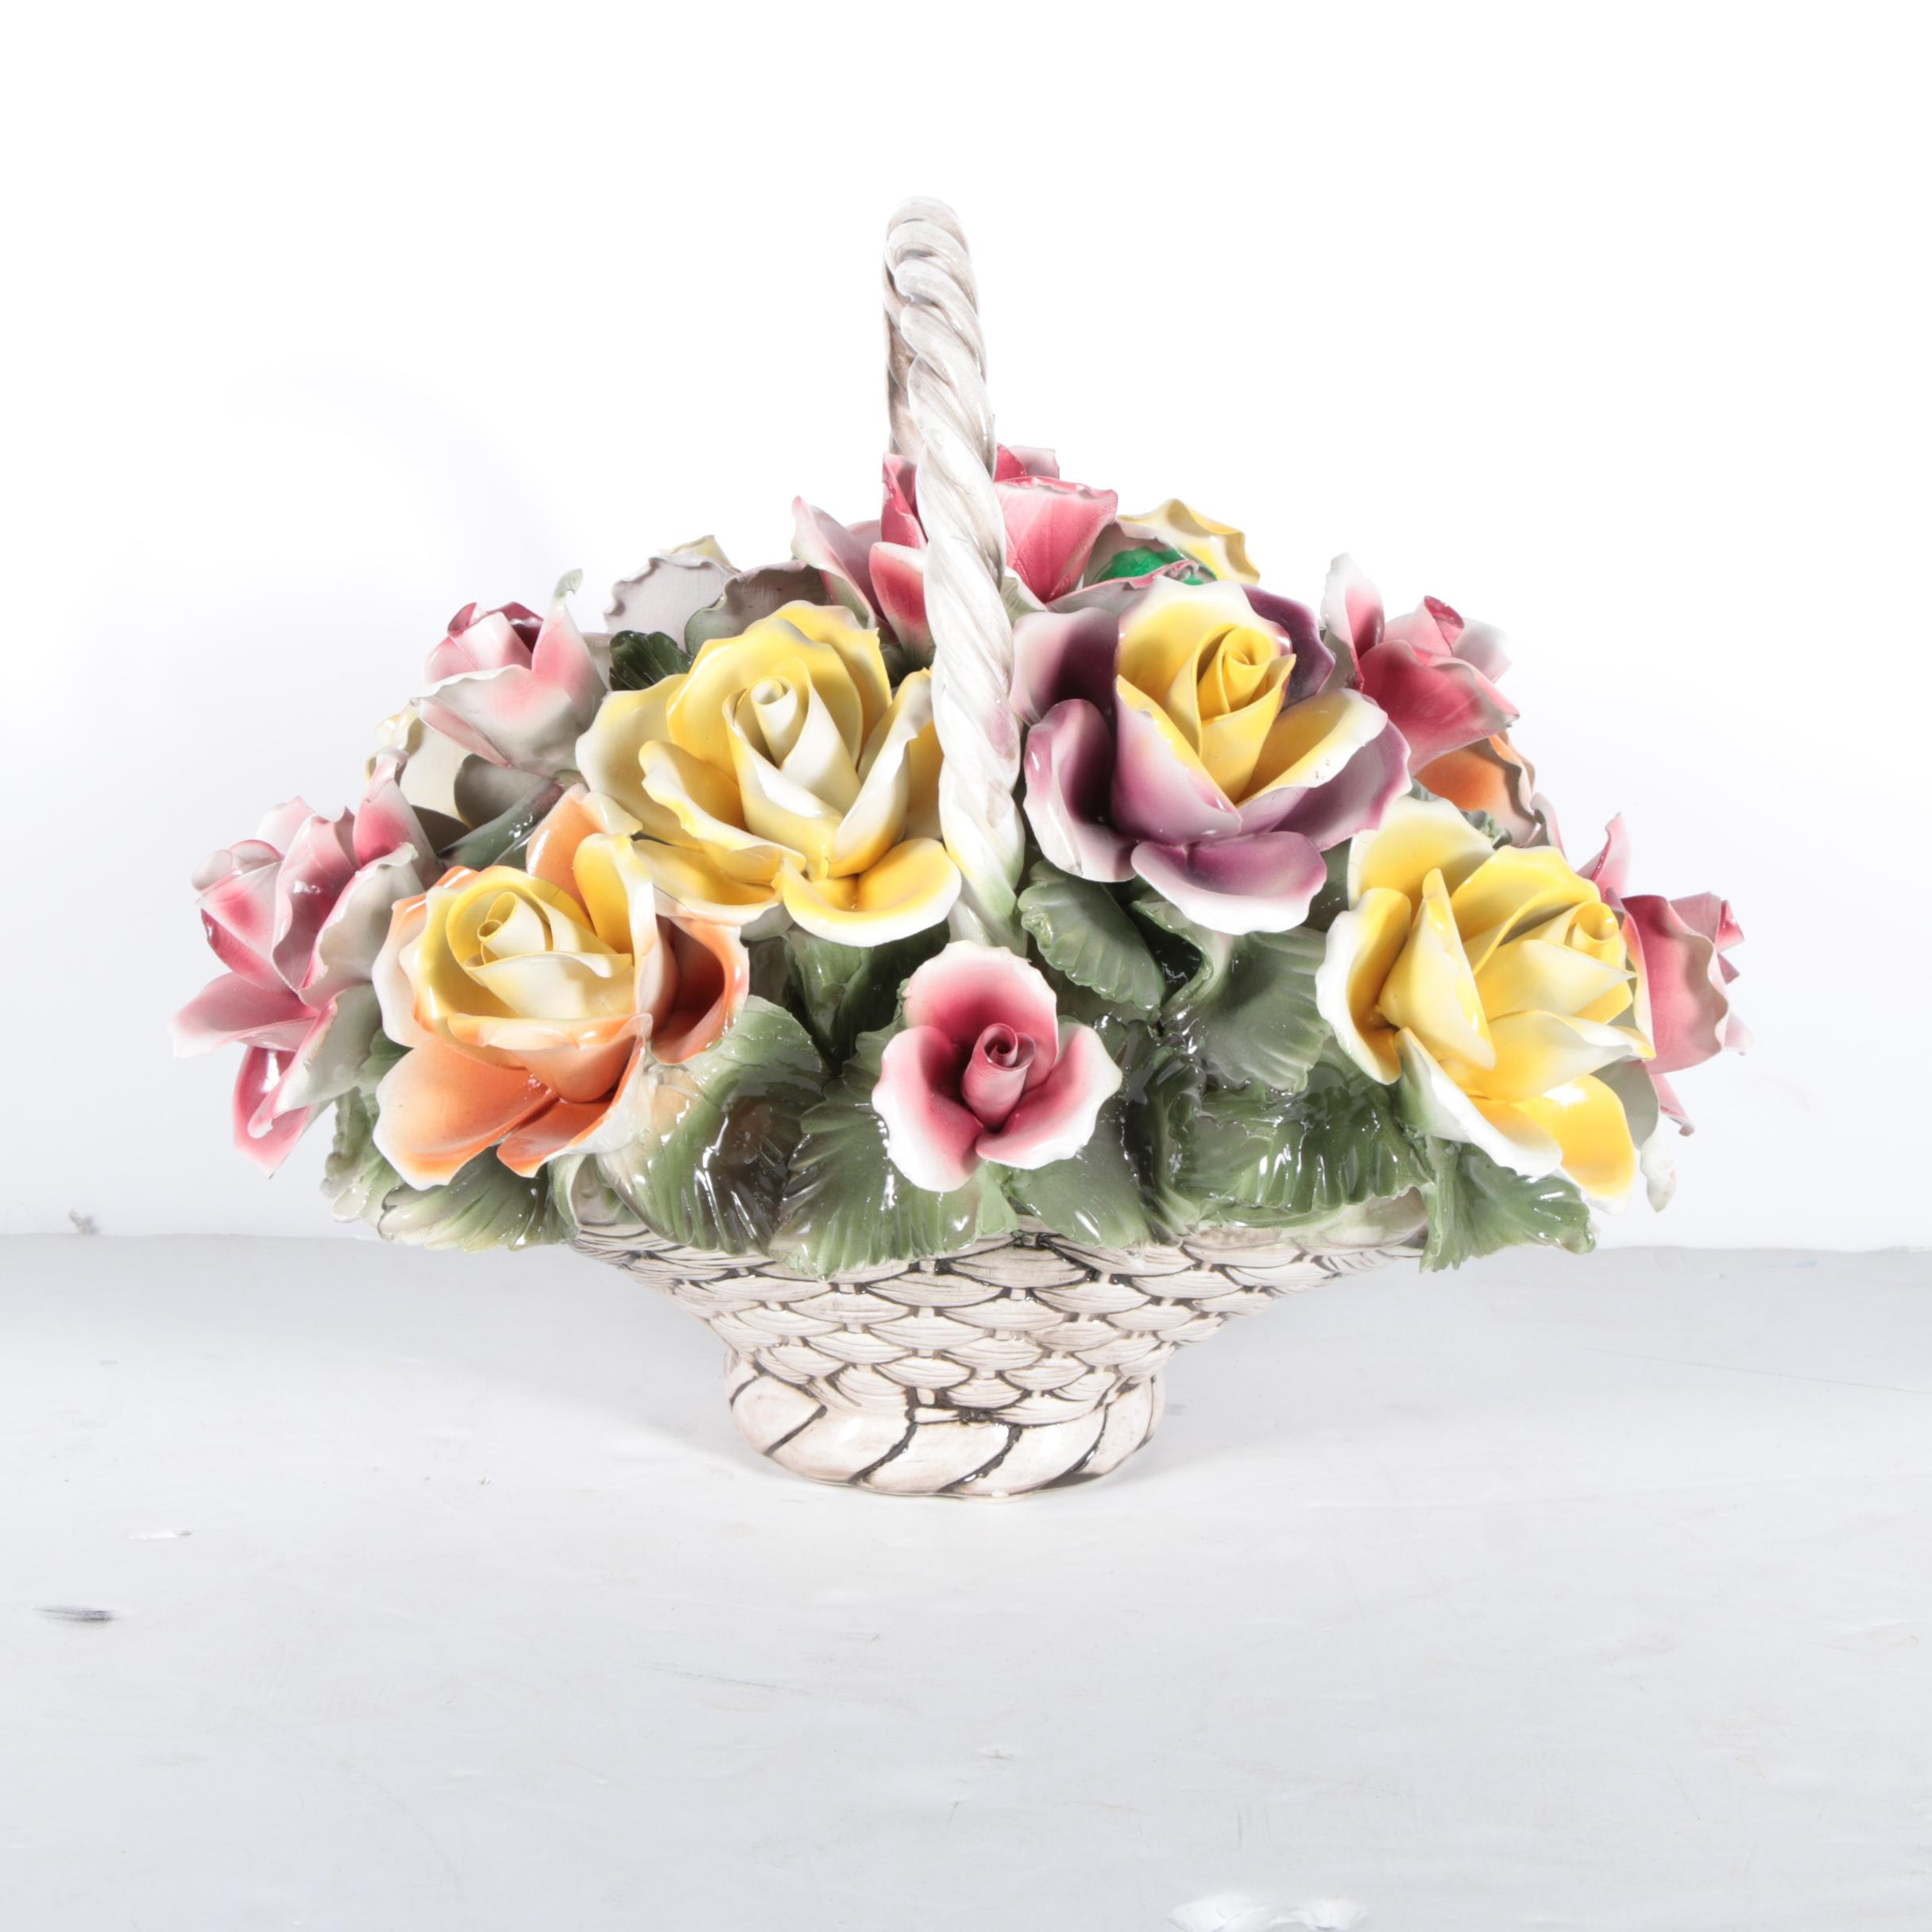 Capodimonte Style Flower Arrangement